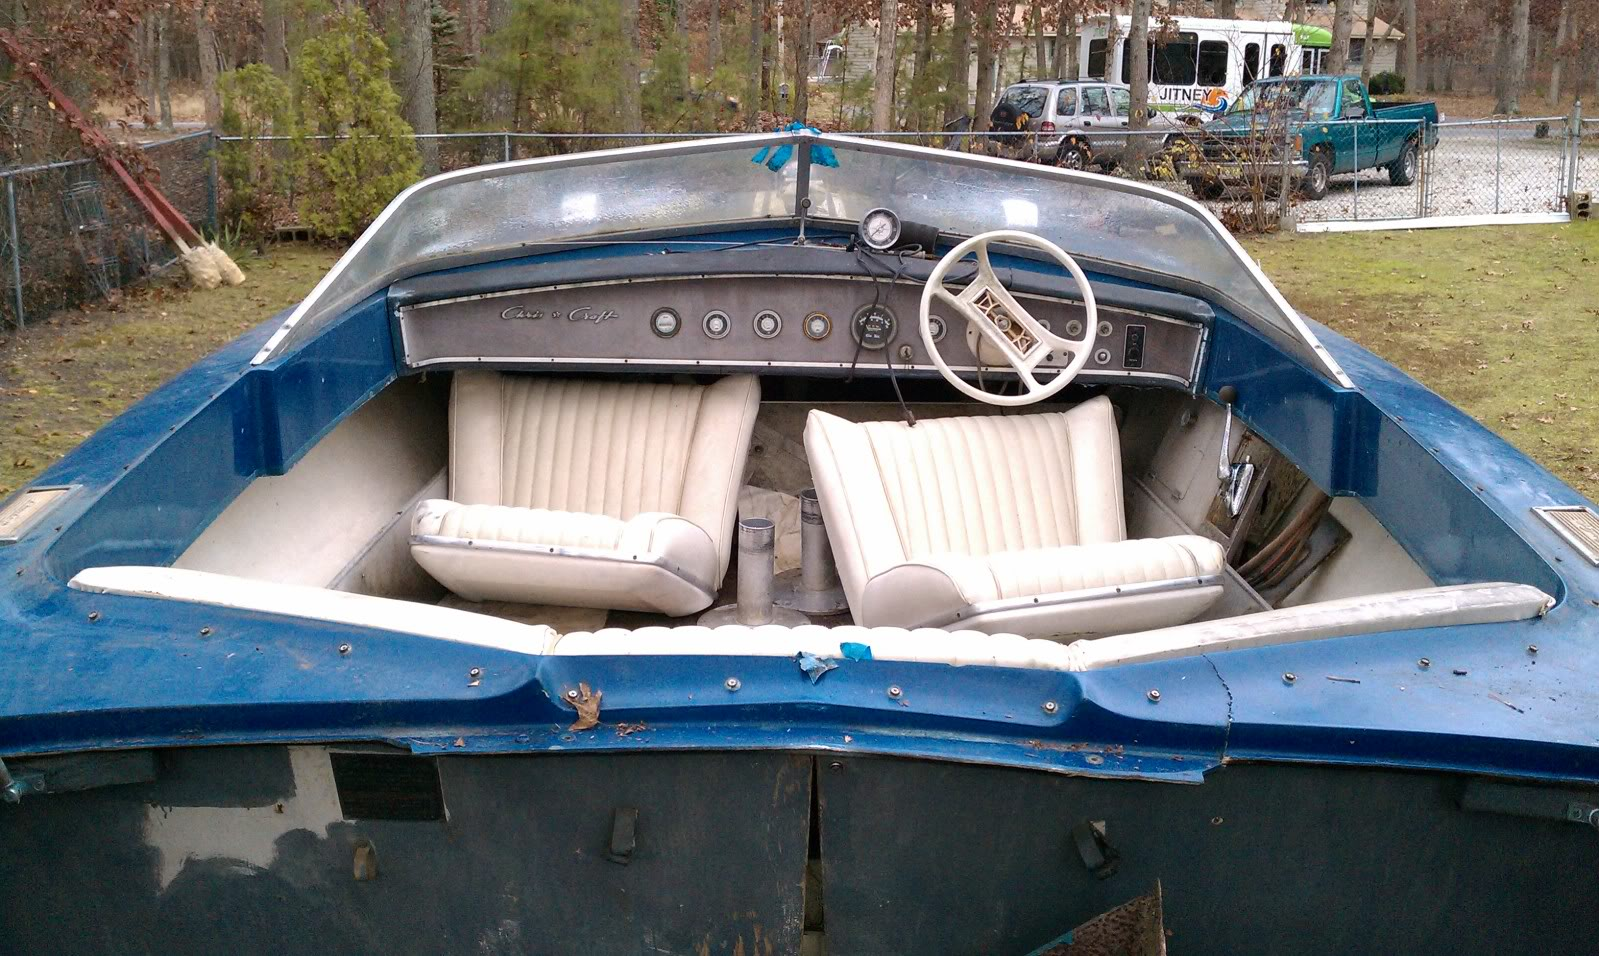 Uffda! Does your boat look like this?